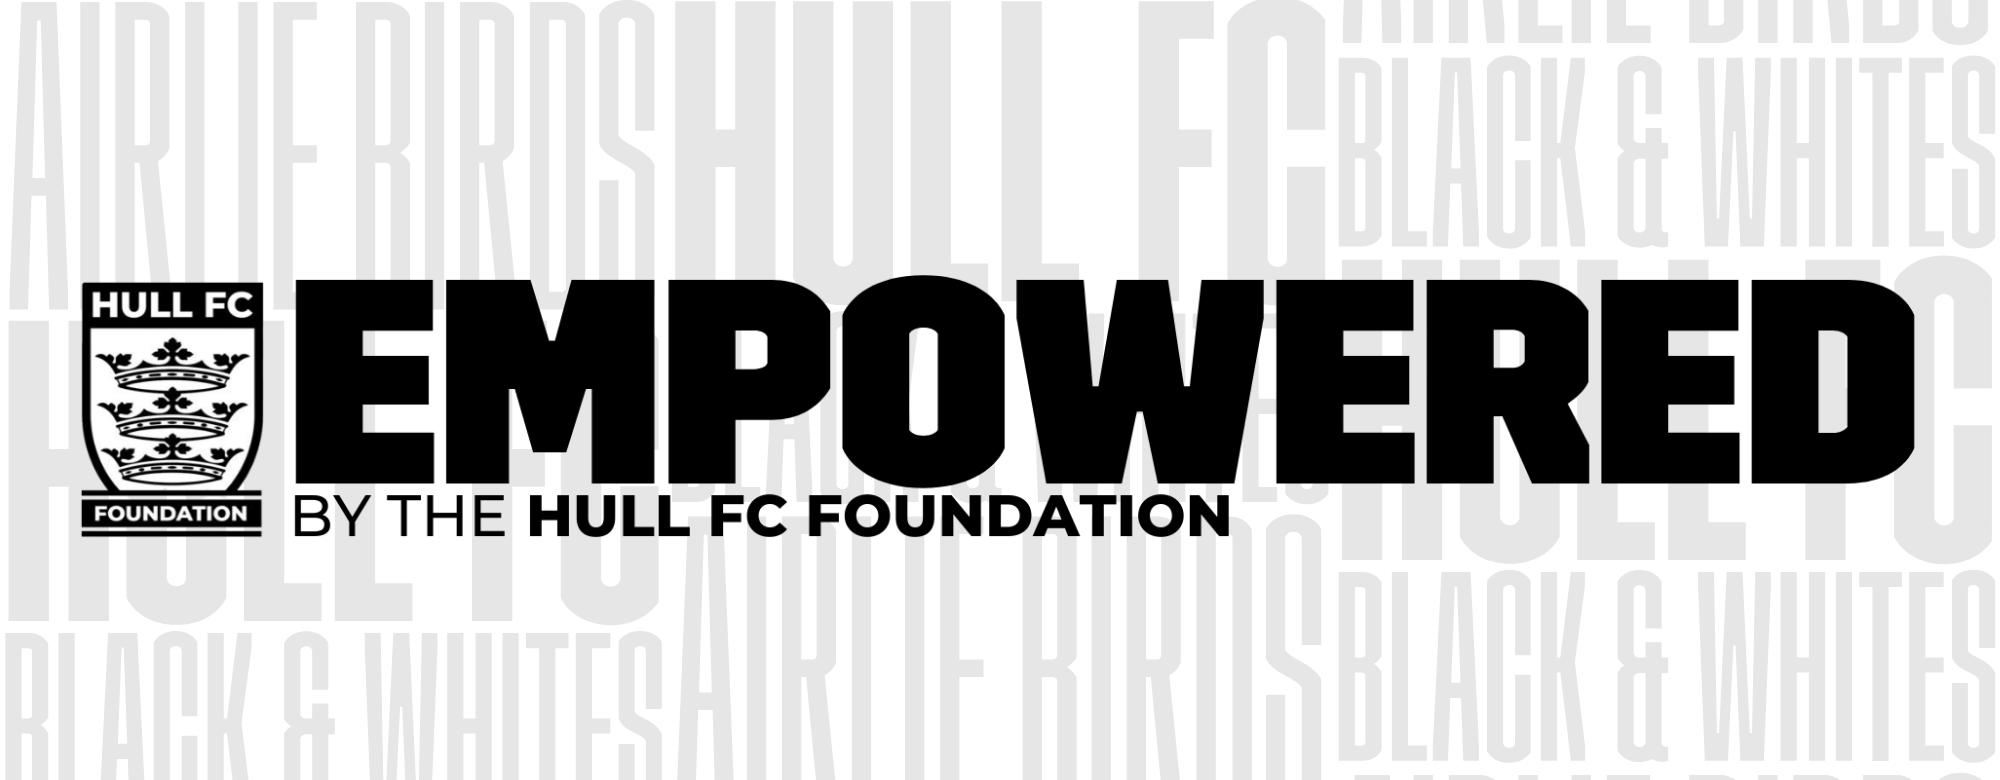 Empower Project Returning To In-Person Delivery With Packed Schedule